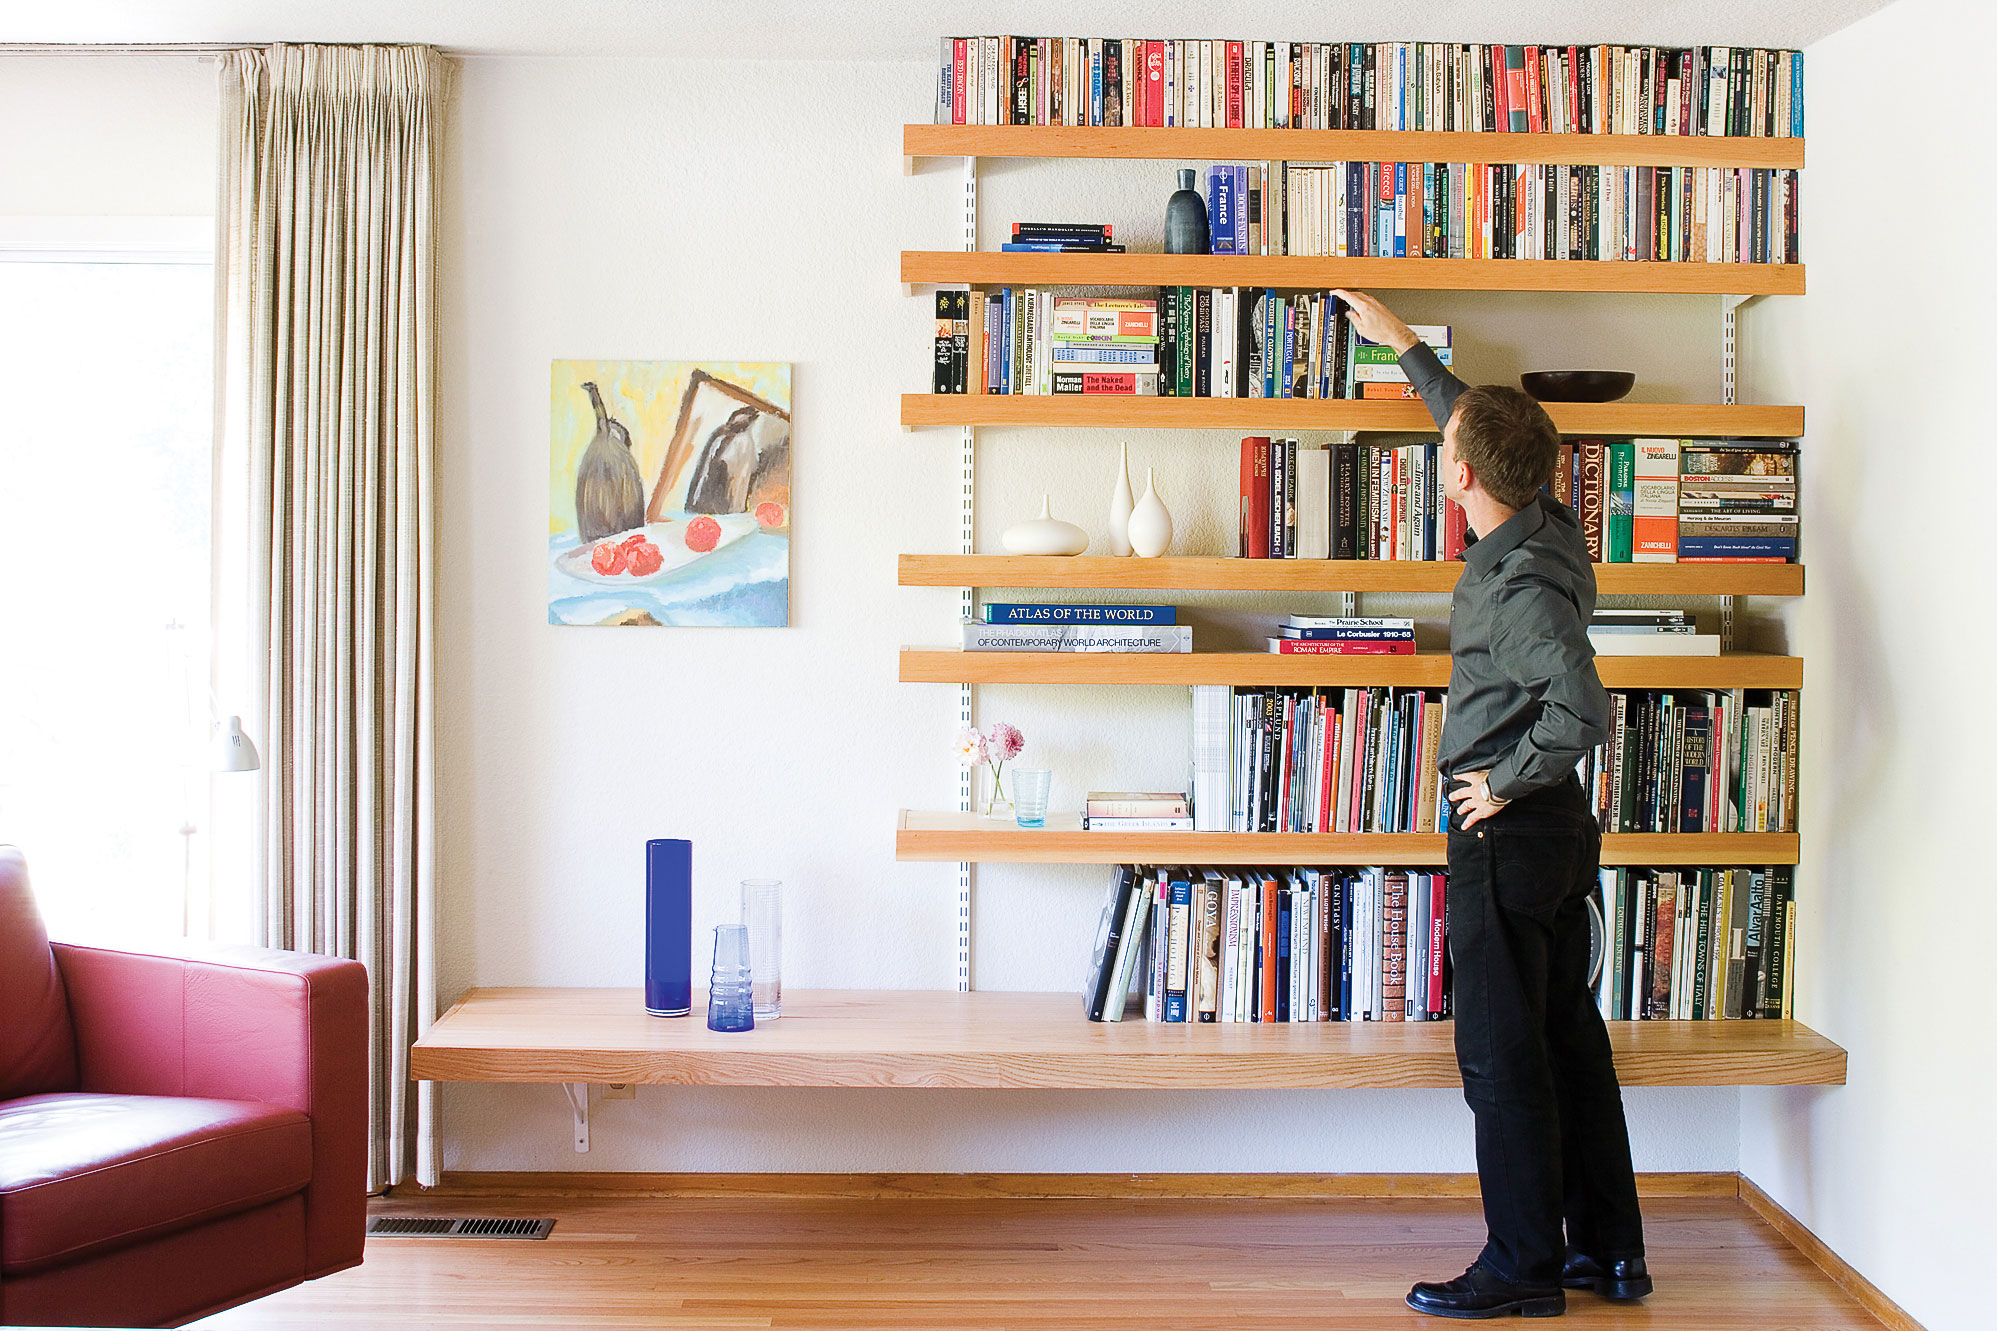 how make floating shelves sunset magazine invisible strong for books easy book oak free standing crown molding mantel shelf without fireplace bathroom hanging wall dunelm ladder